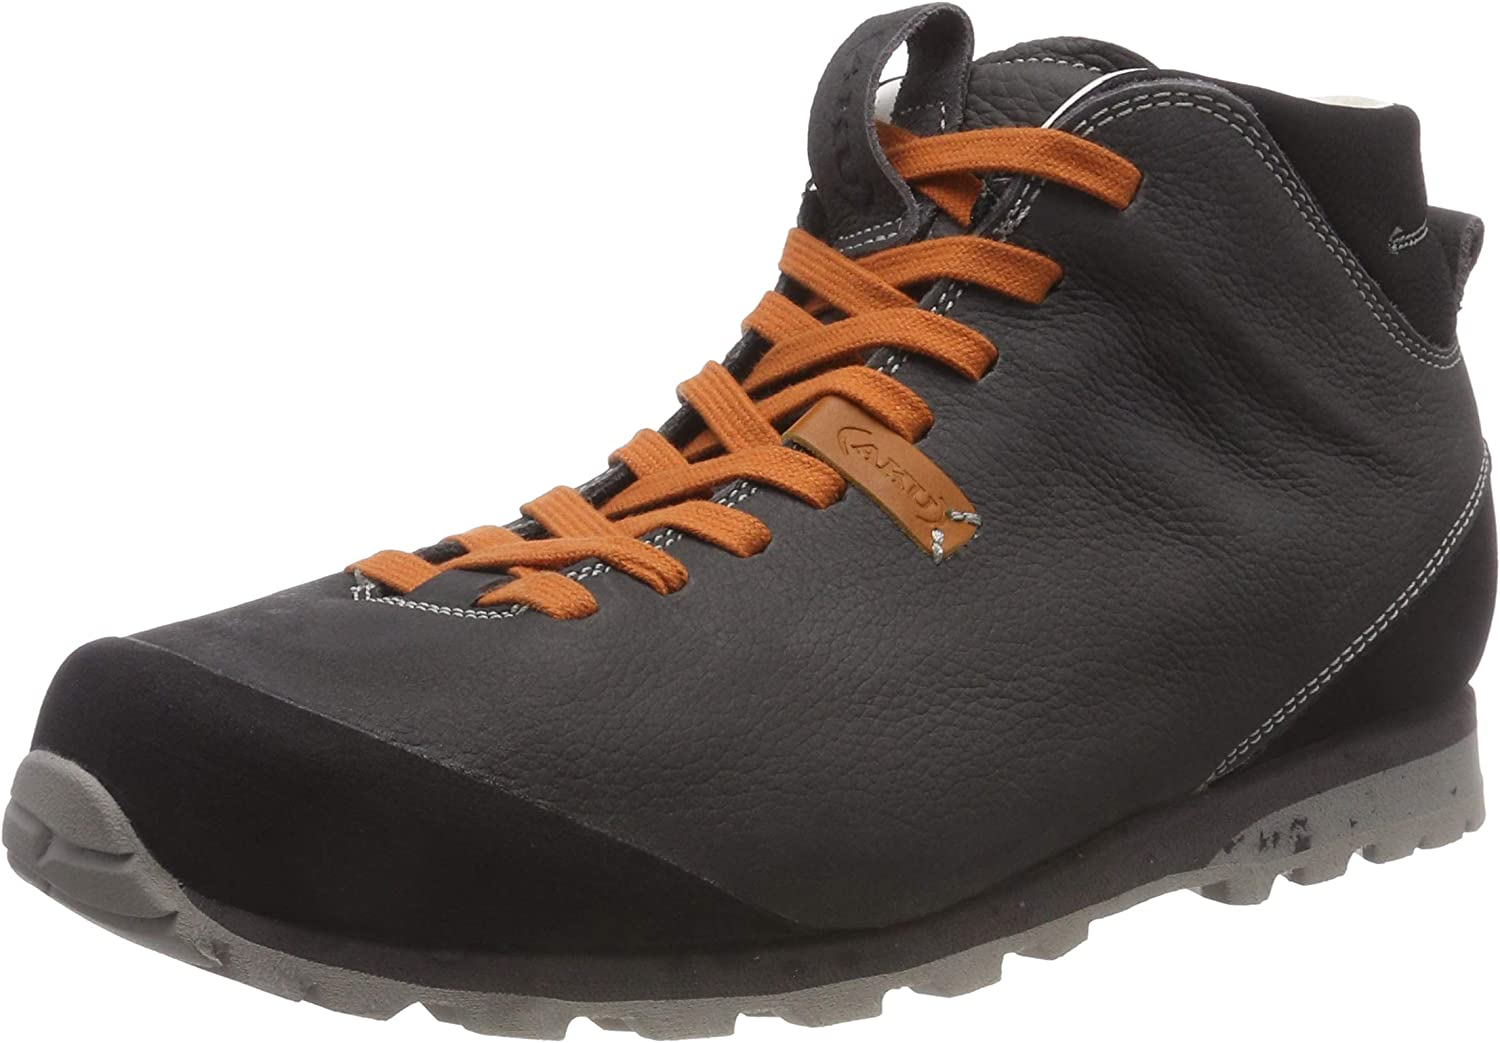 AKU Unisex Adults' Bellamont Mid 2 Plus High Rise Hiking Boots